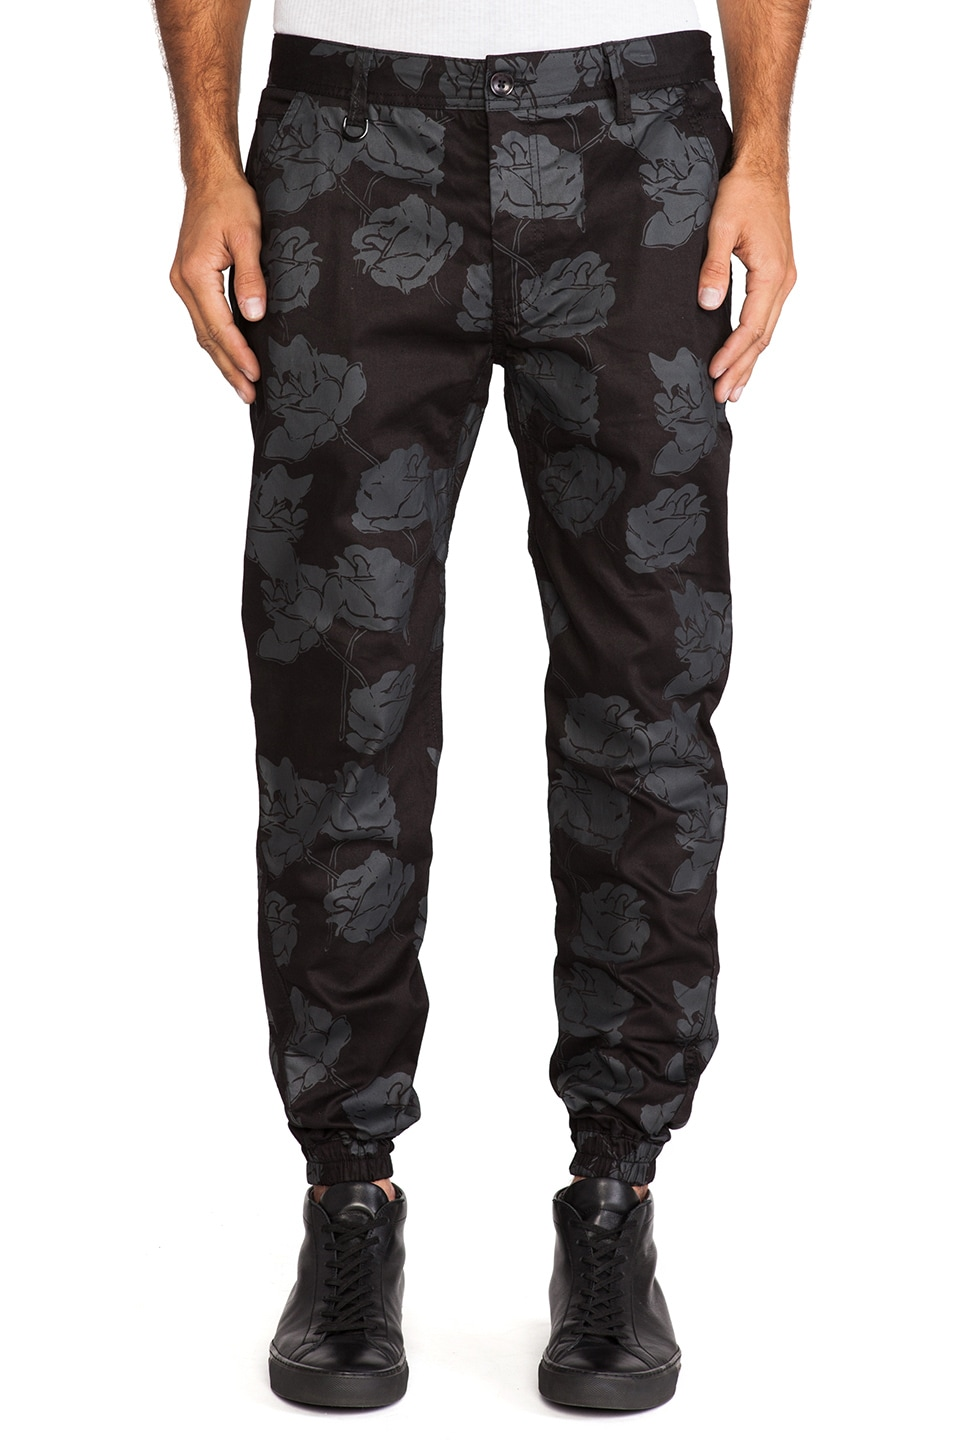 Publish Arion Novelty Jogger in Black